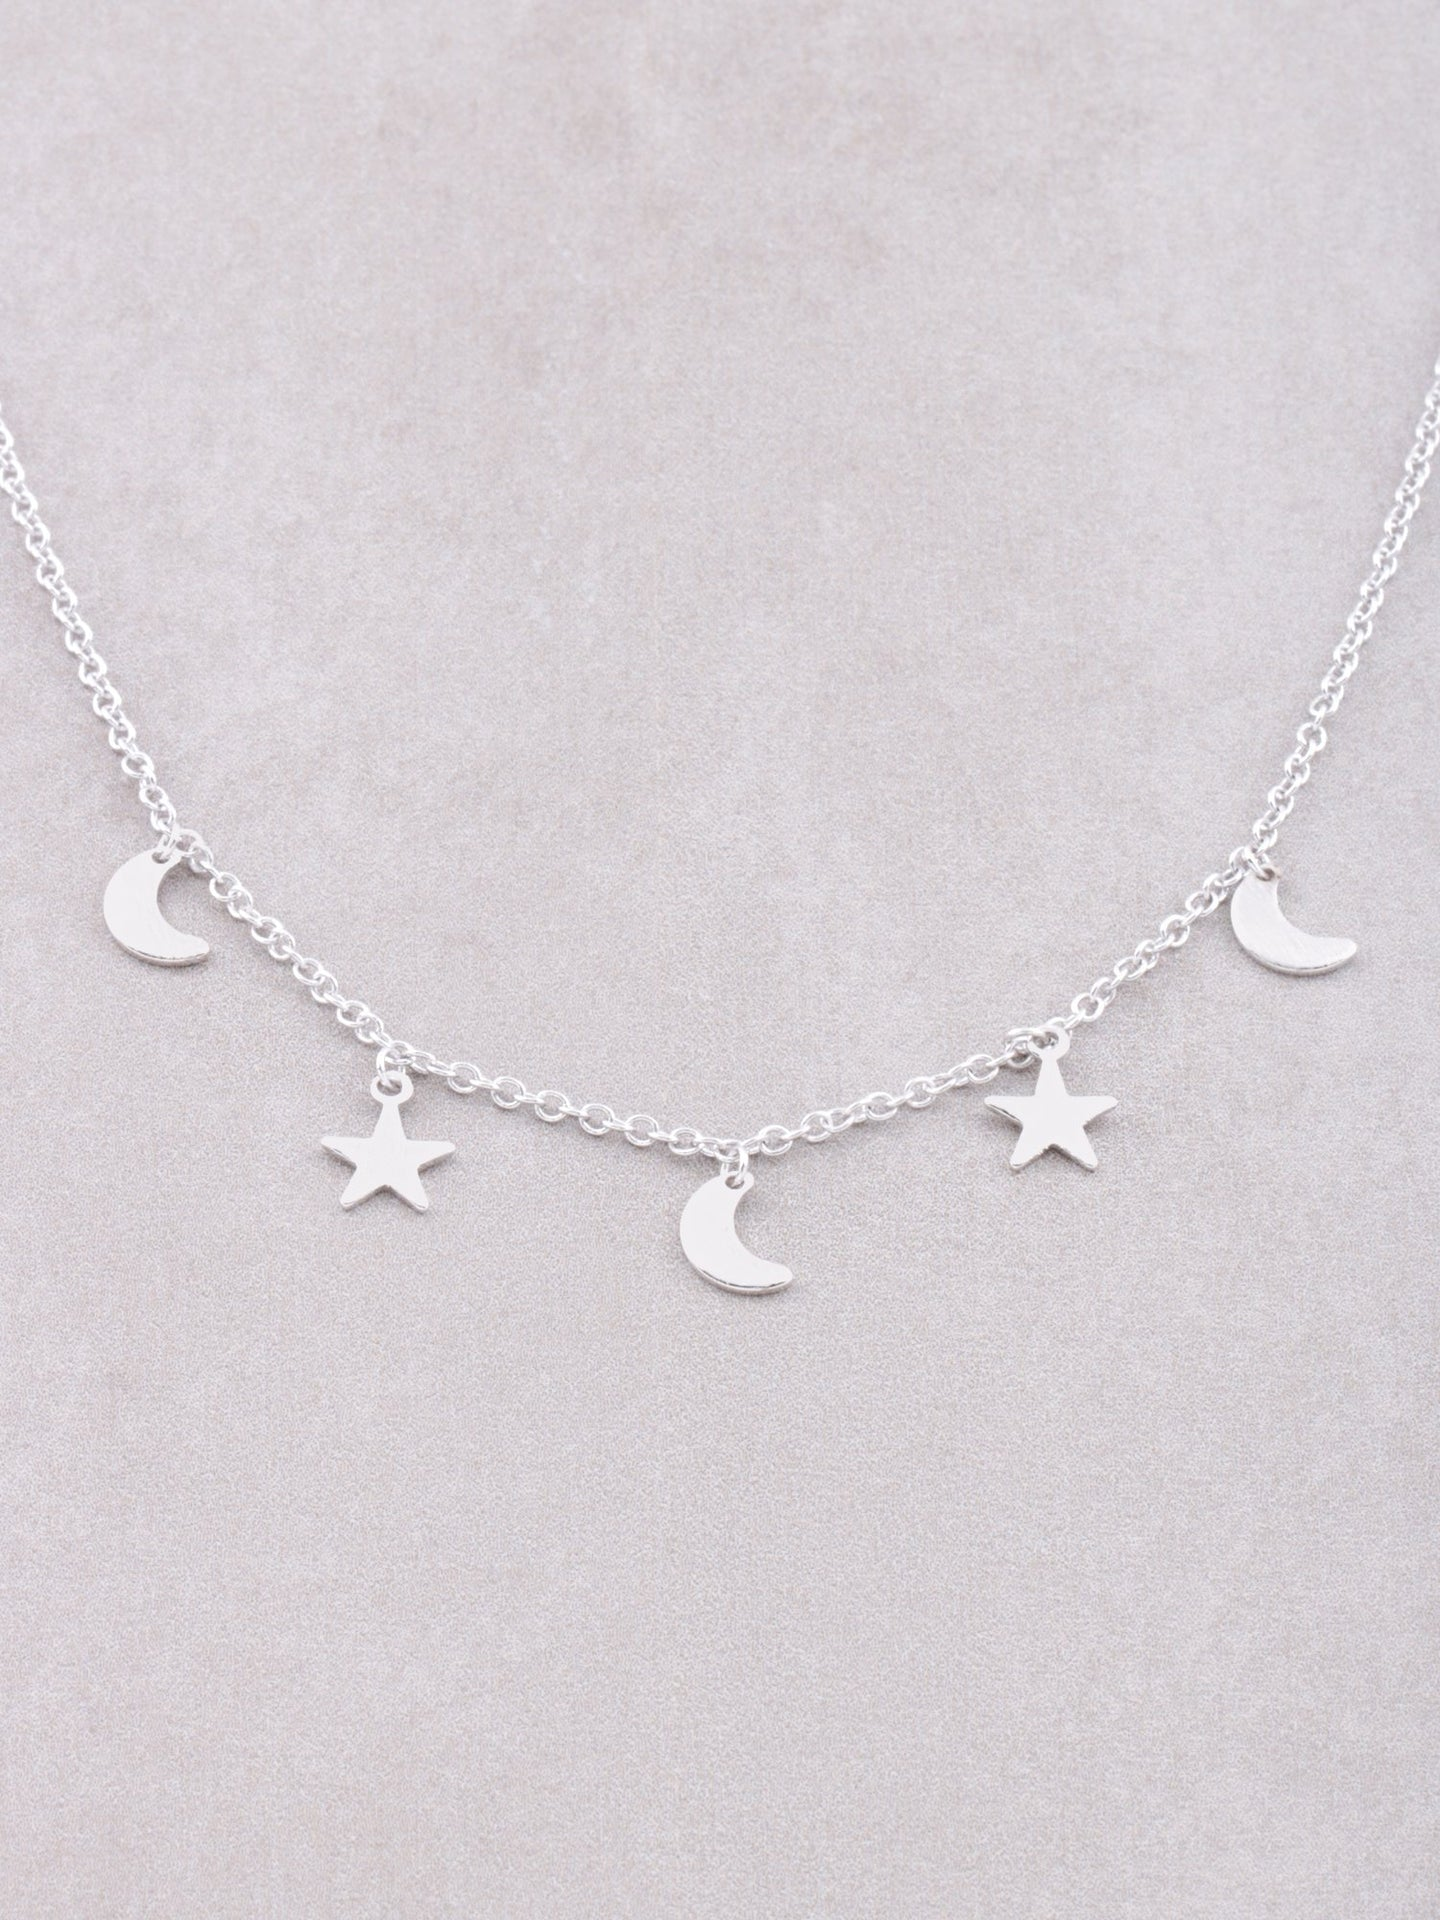 Nighty Sky Necklace Anarchy Street Silver